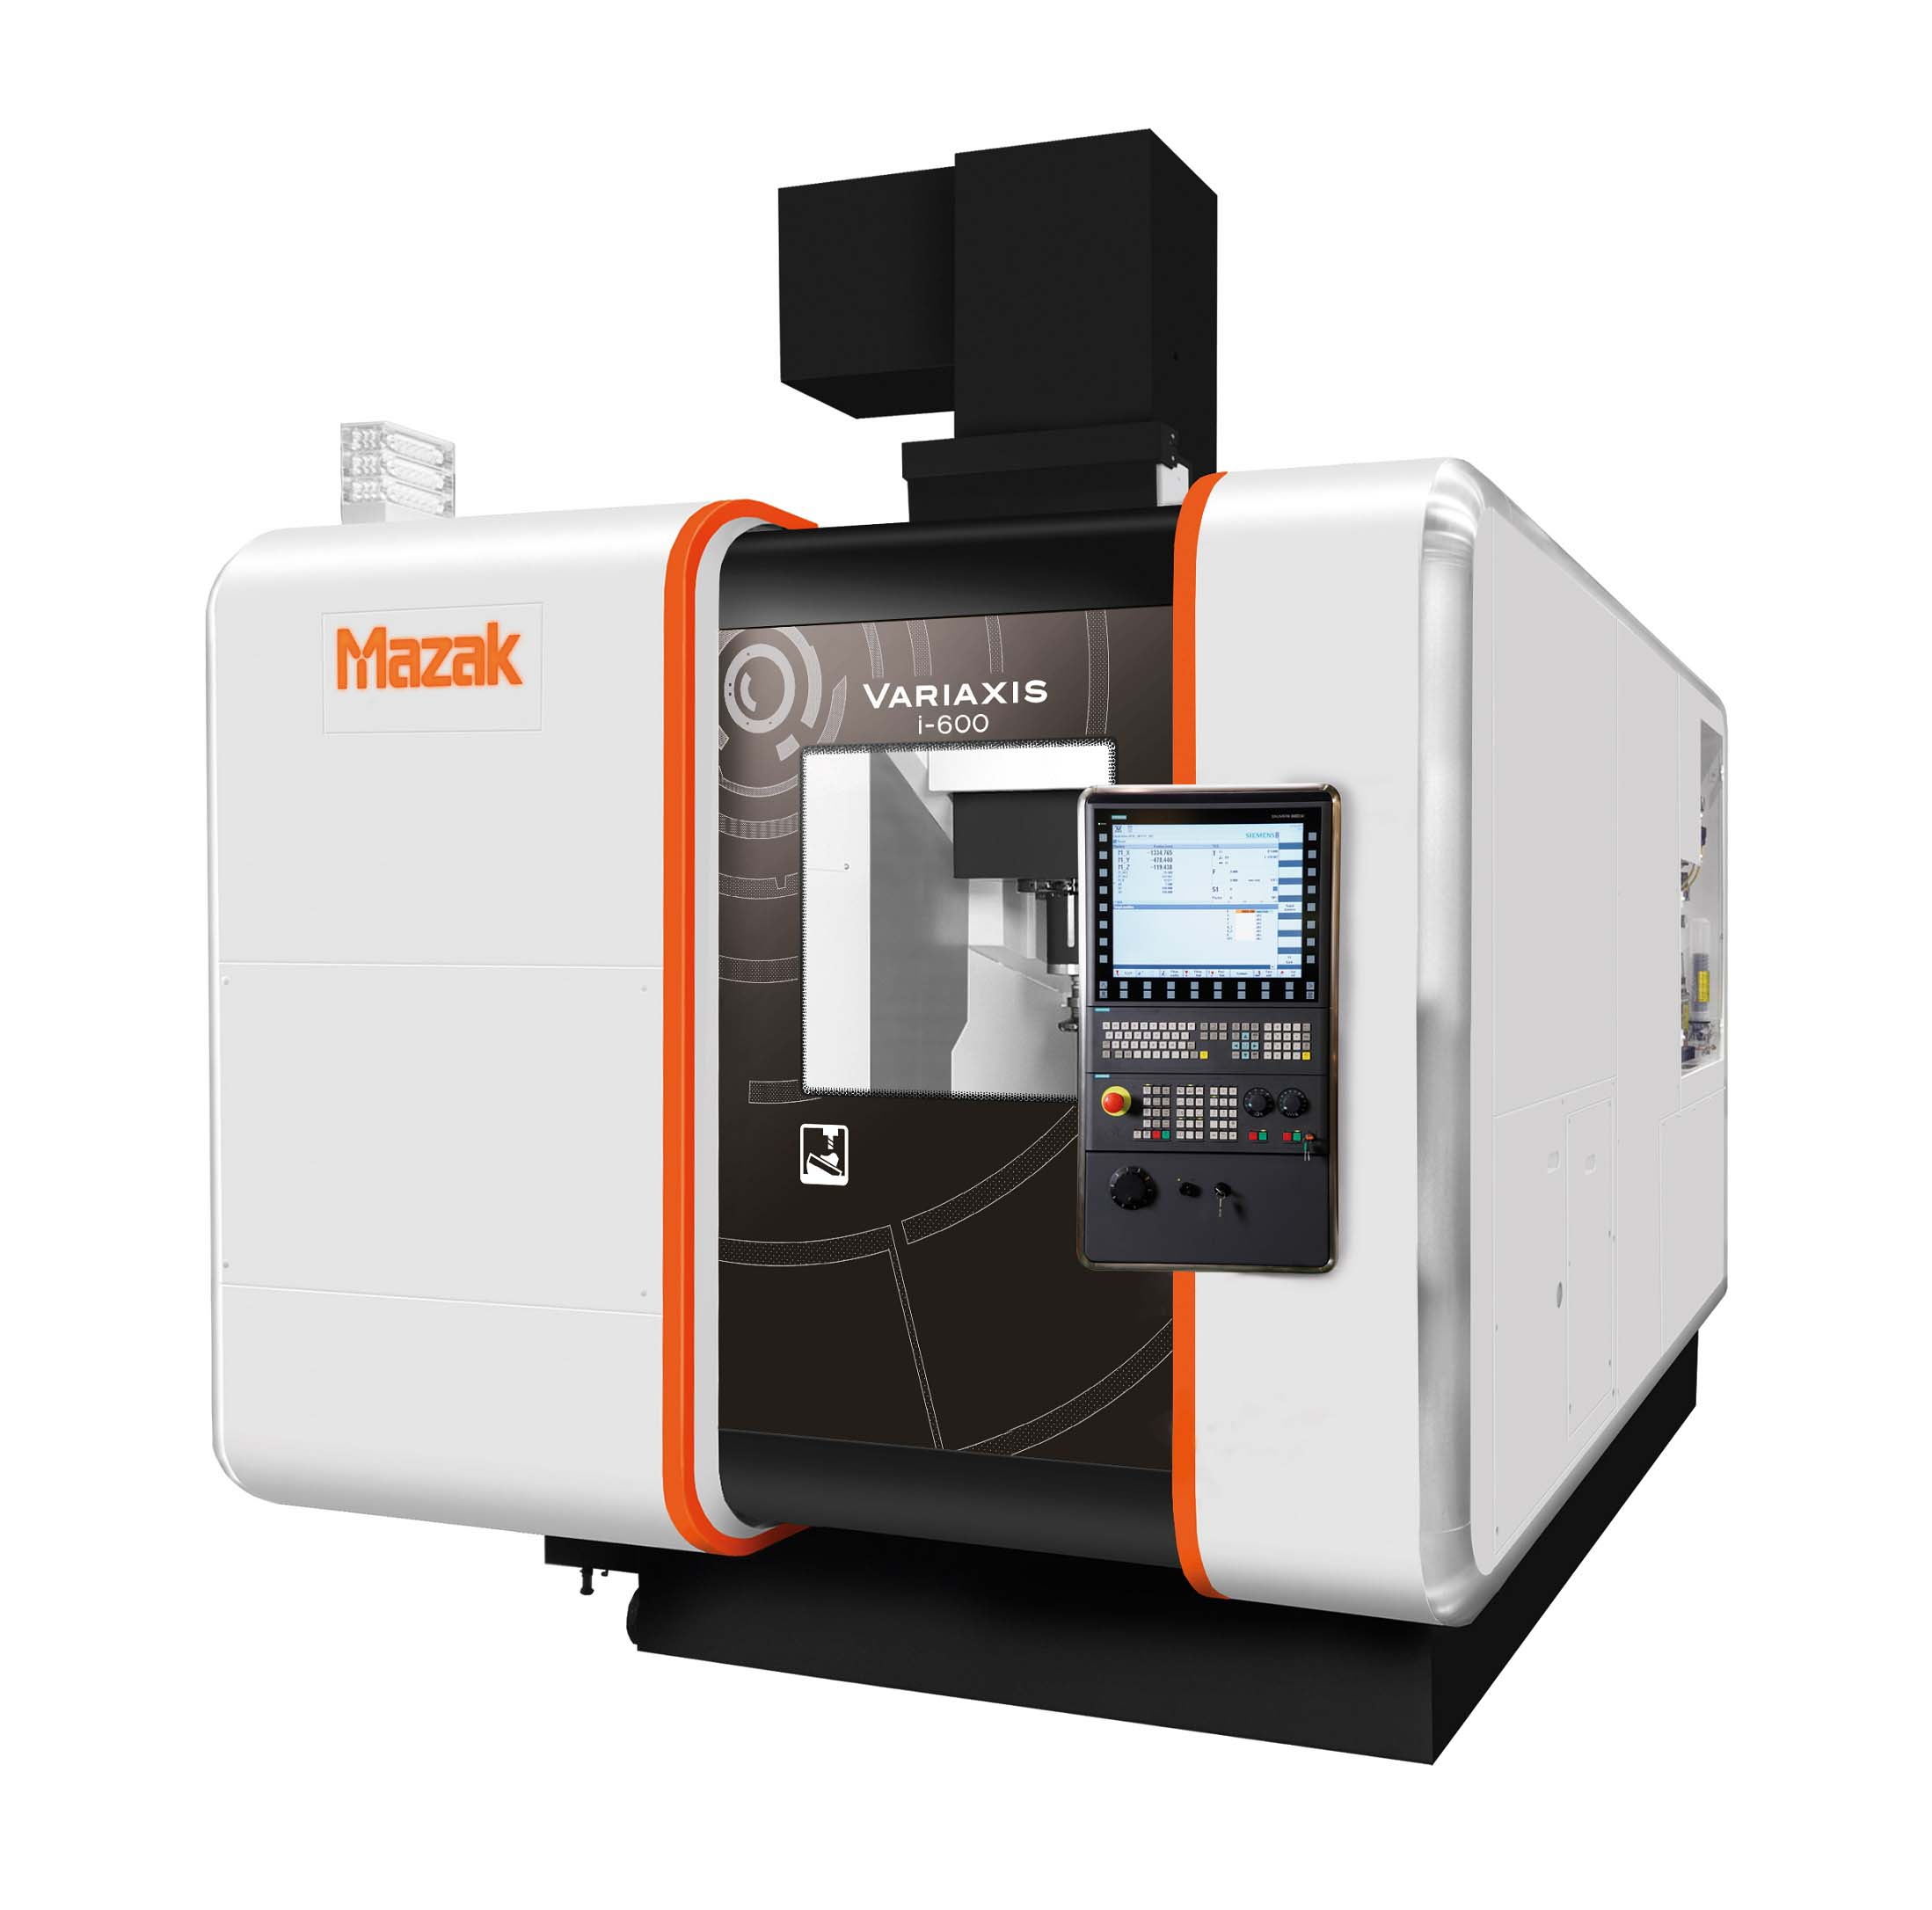 New entry in Mazak's portfolio